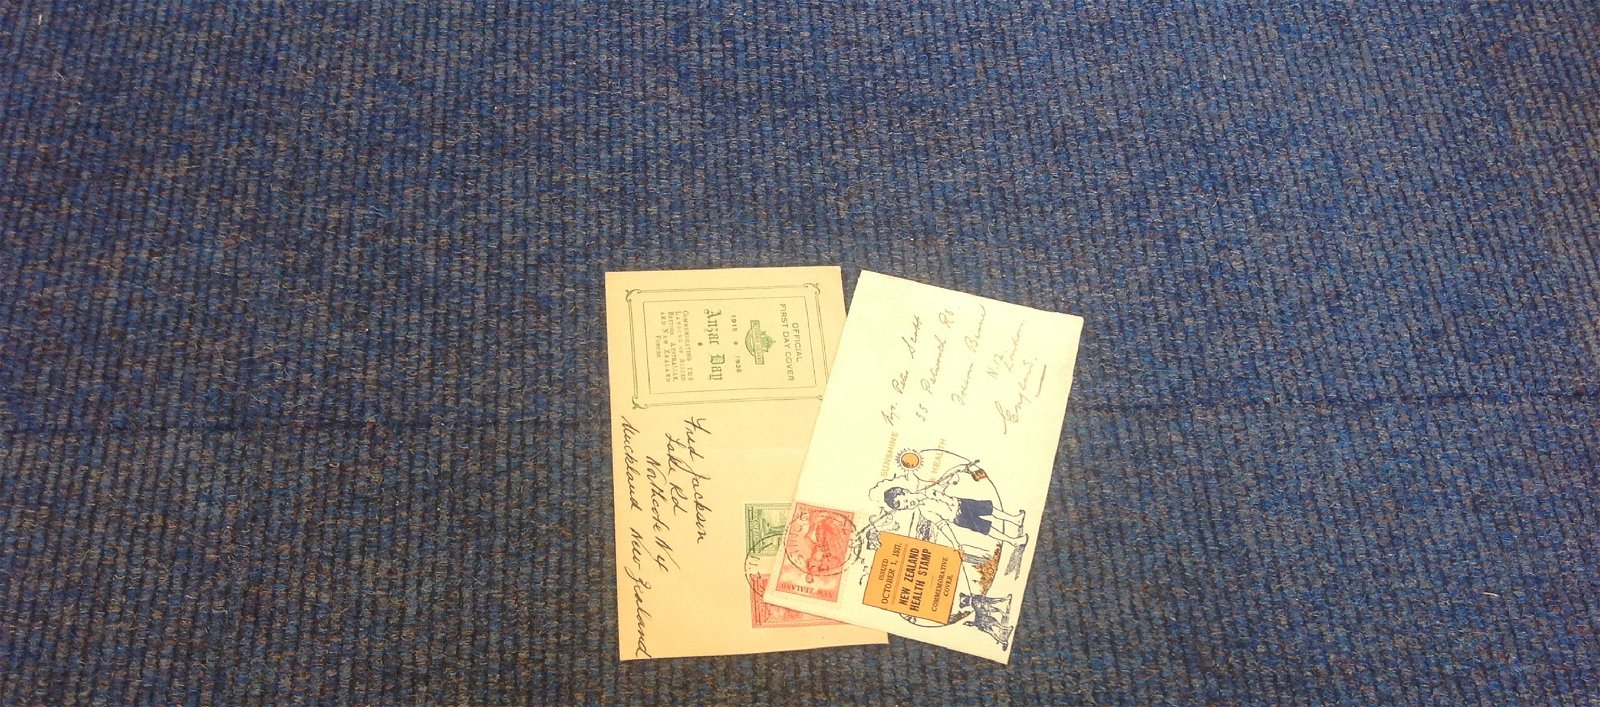 New Zealand FDC collection, 2 covers, 1936 Anzac day